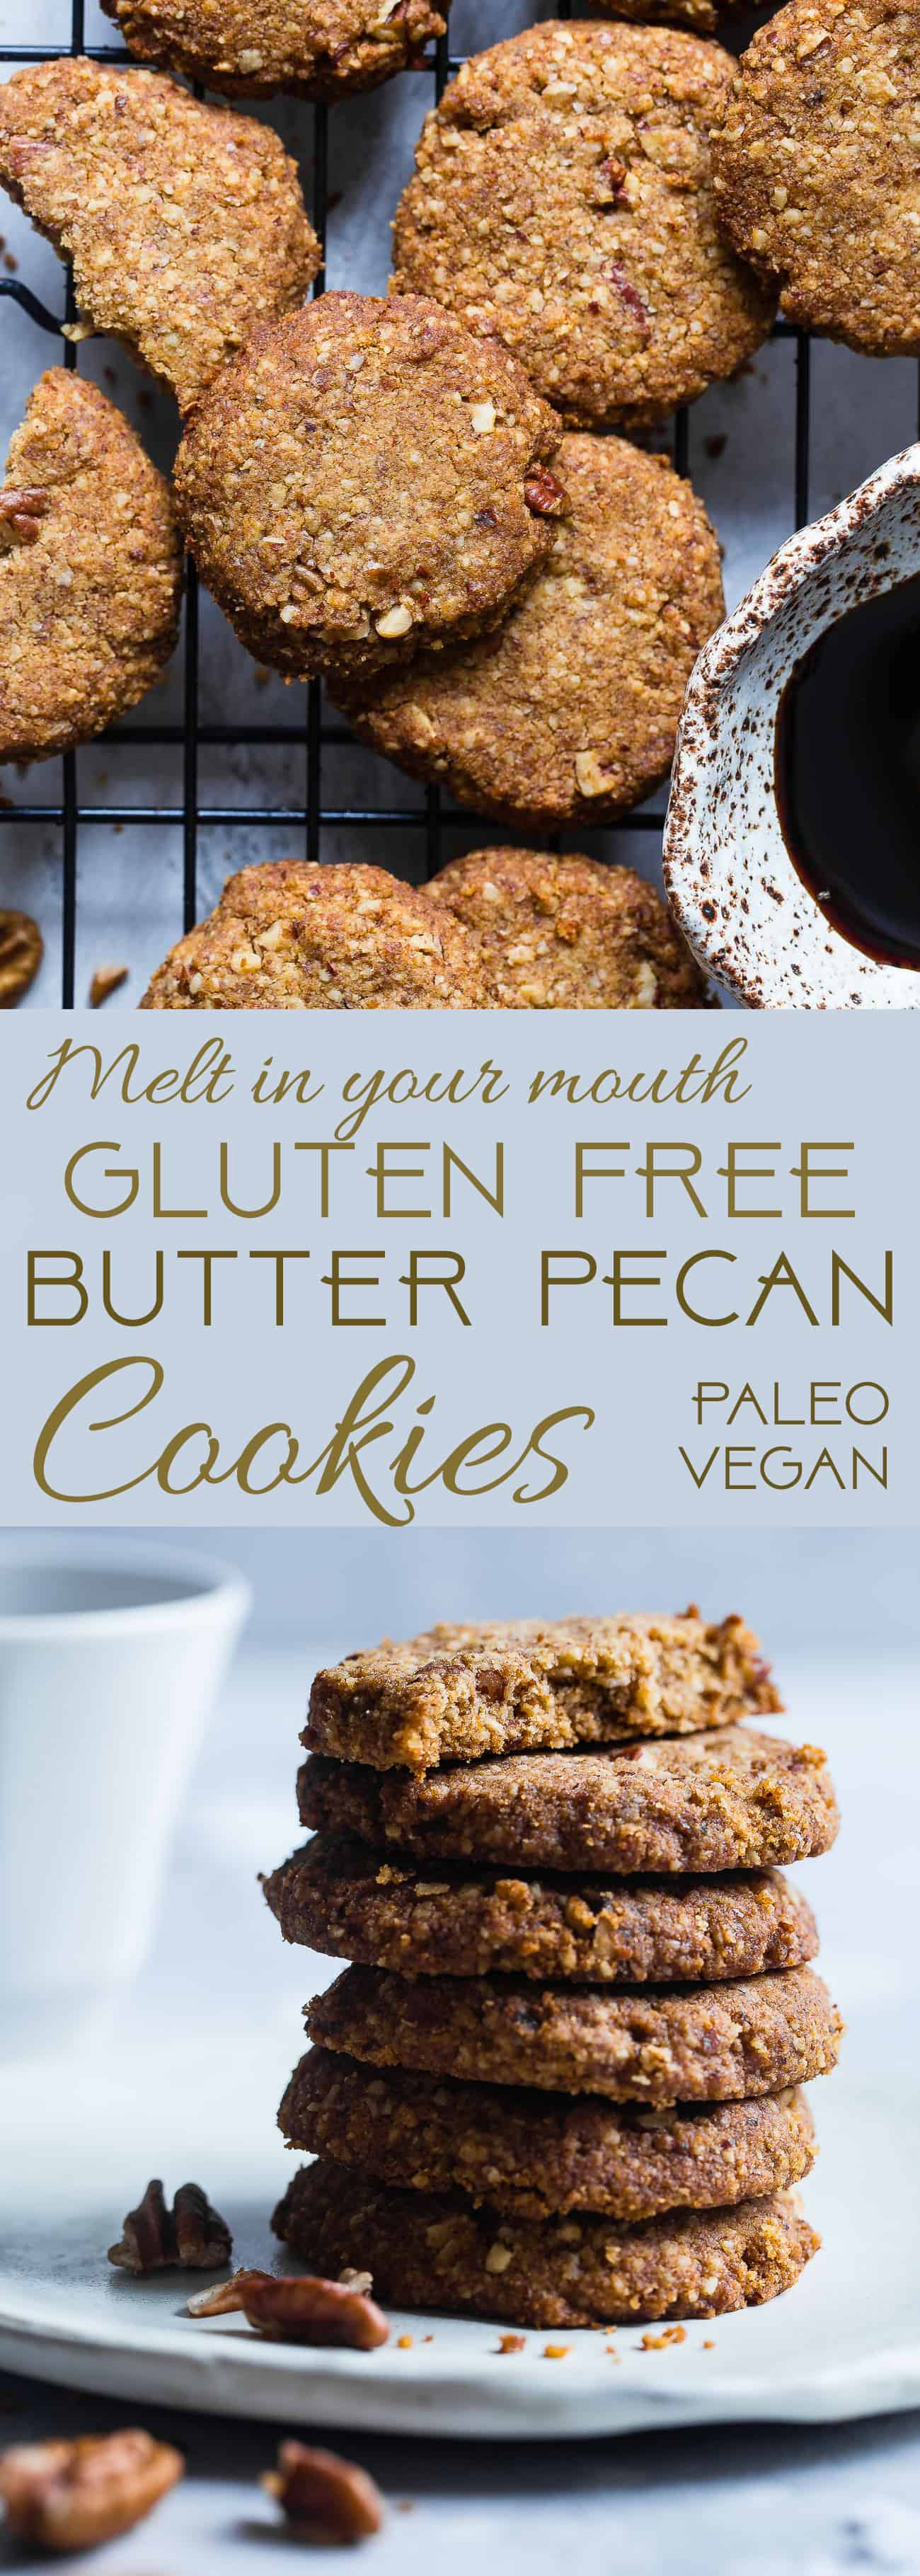 Chewy Butter Pecan Cookies -These 6 ingredient, gluten freeButter Pecan Cookies are perfectly crisp on the outside and chewy on the inside! A paleo and vegan friendly, dairy-free treat for the holidays! | Foodfaithfitness.com | @FoodFaithFit| healthy butter pecan cookies. Paleo christmas cookies. vegan christmas cookies. healthy christmas cookies. shortbread cookies. gluten free shortbread.